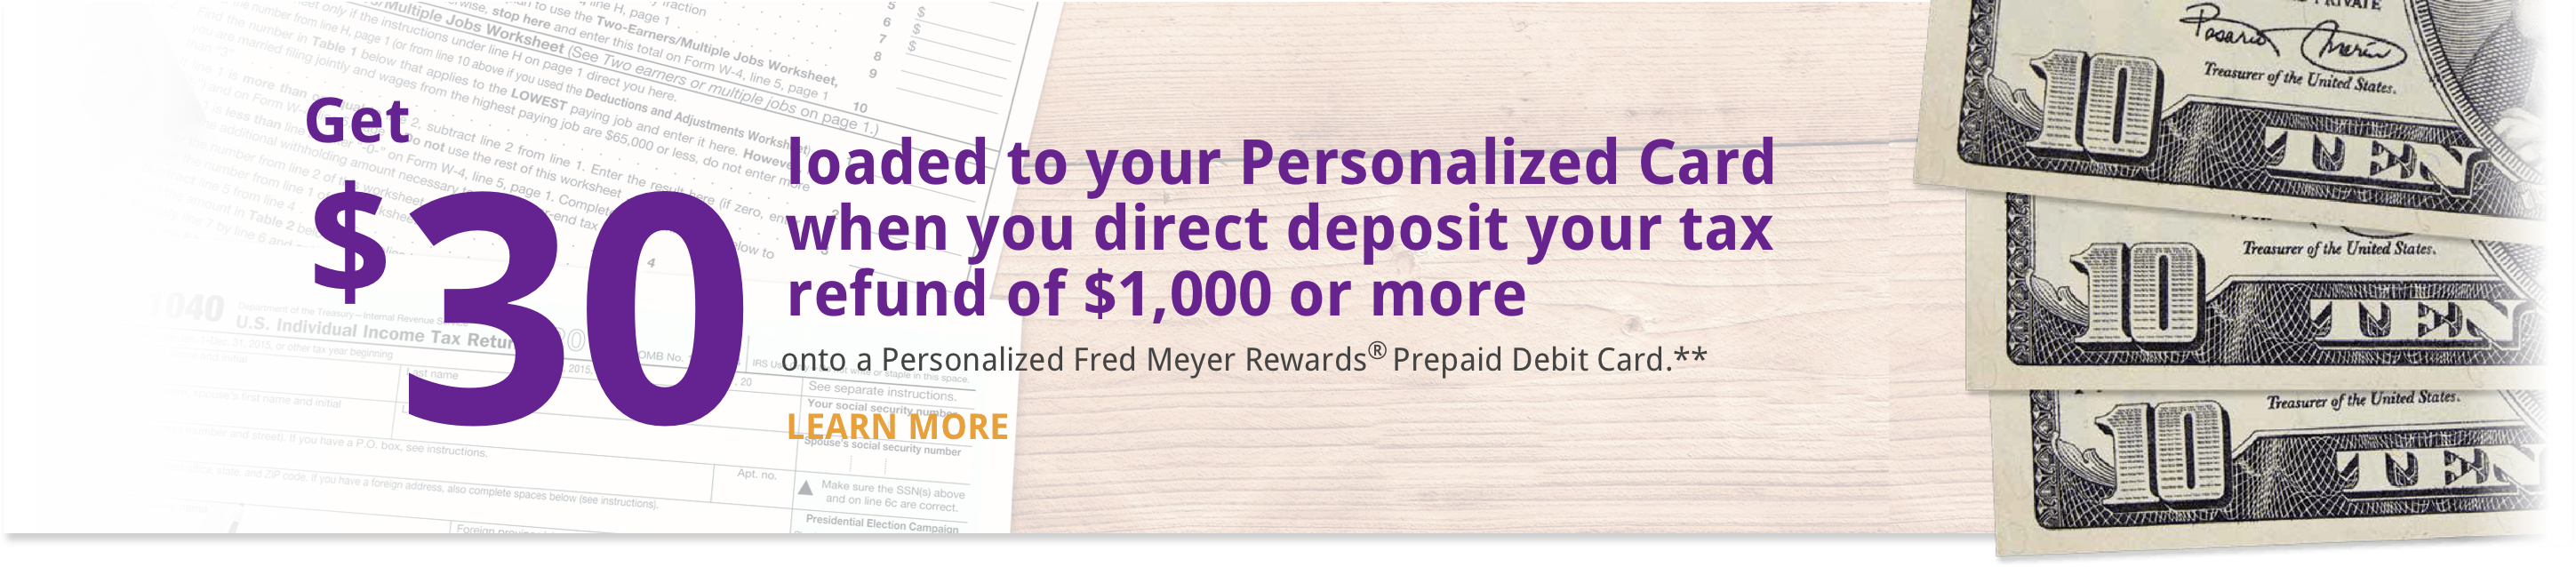 Get $30 loaded to your personalized card when you direct deposit your tax refund of $1,000 or more